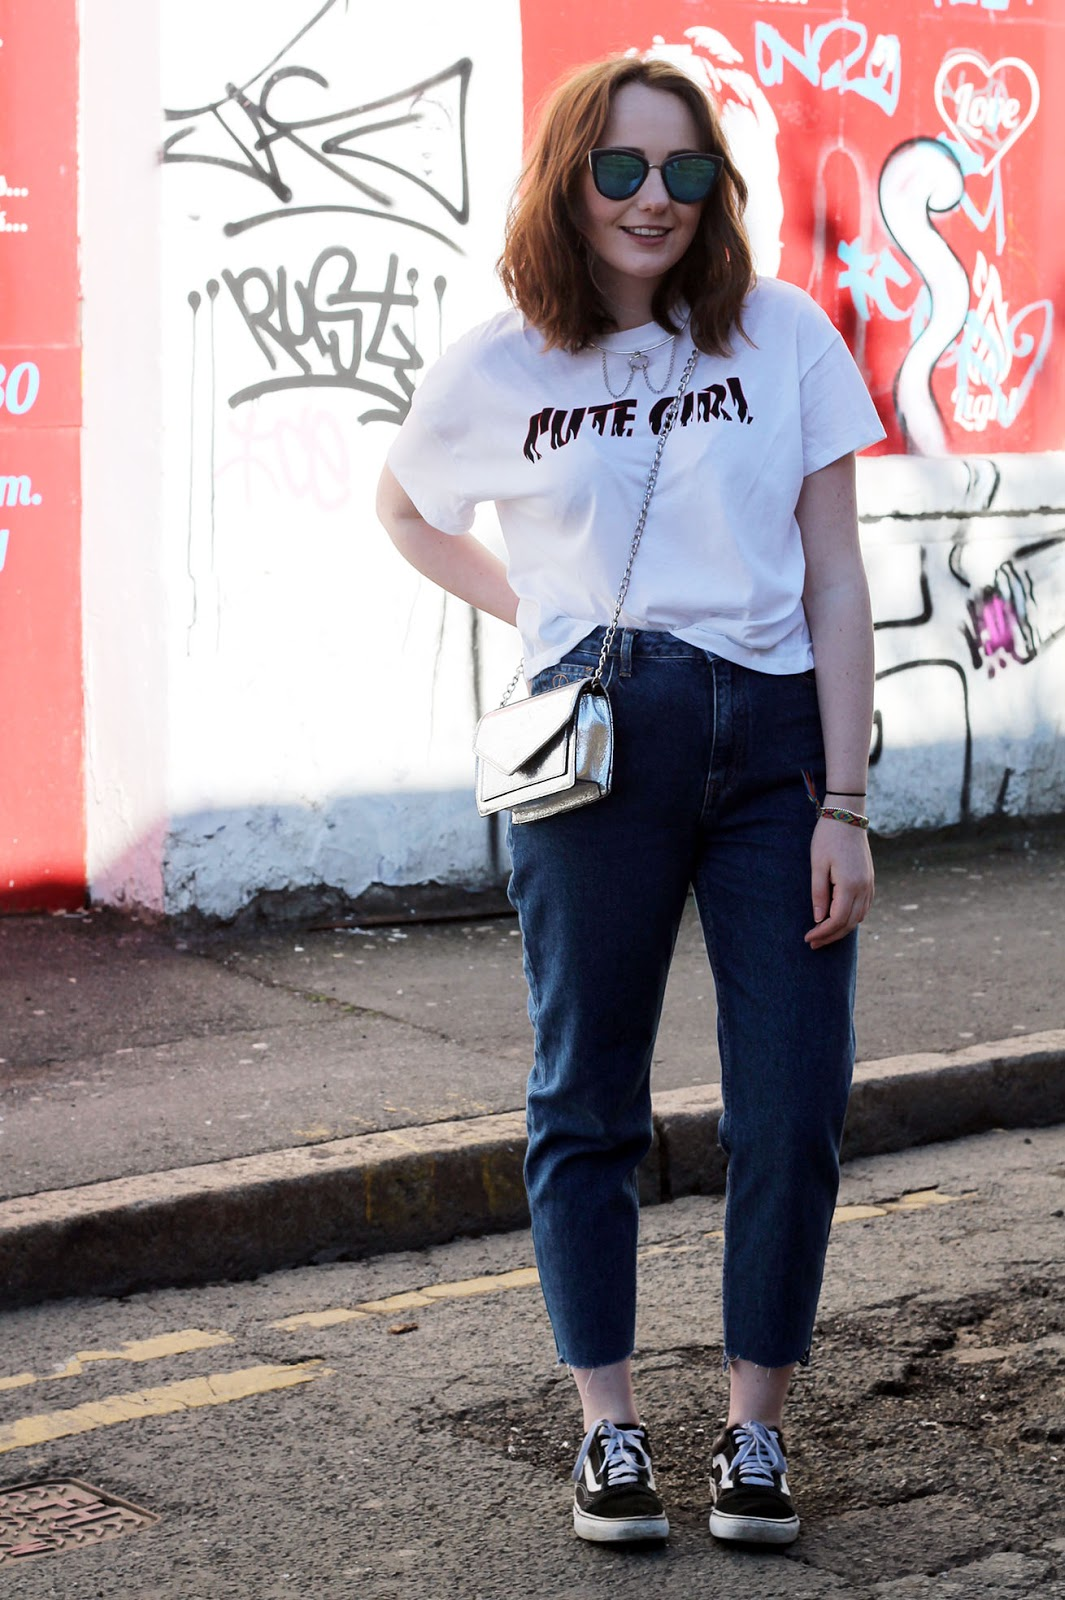 Liverpool fashion blogger outfit with DIY customised jeans and silver accessories